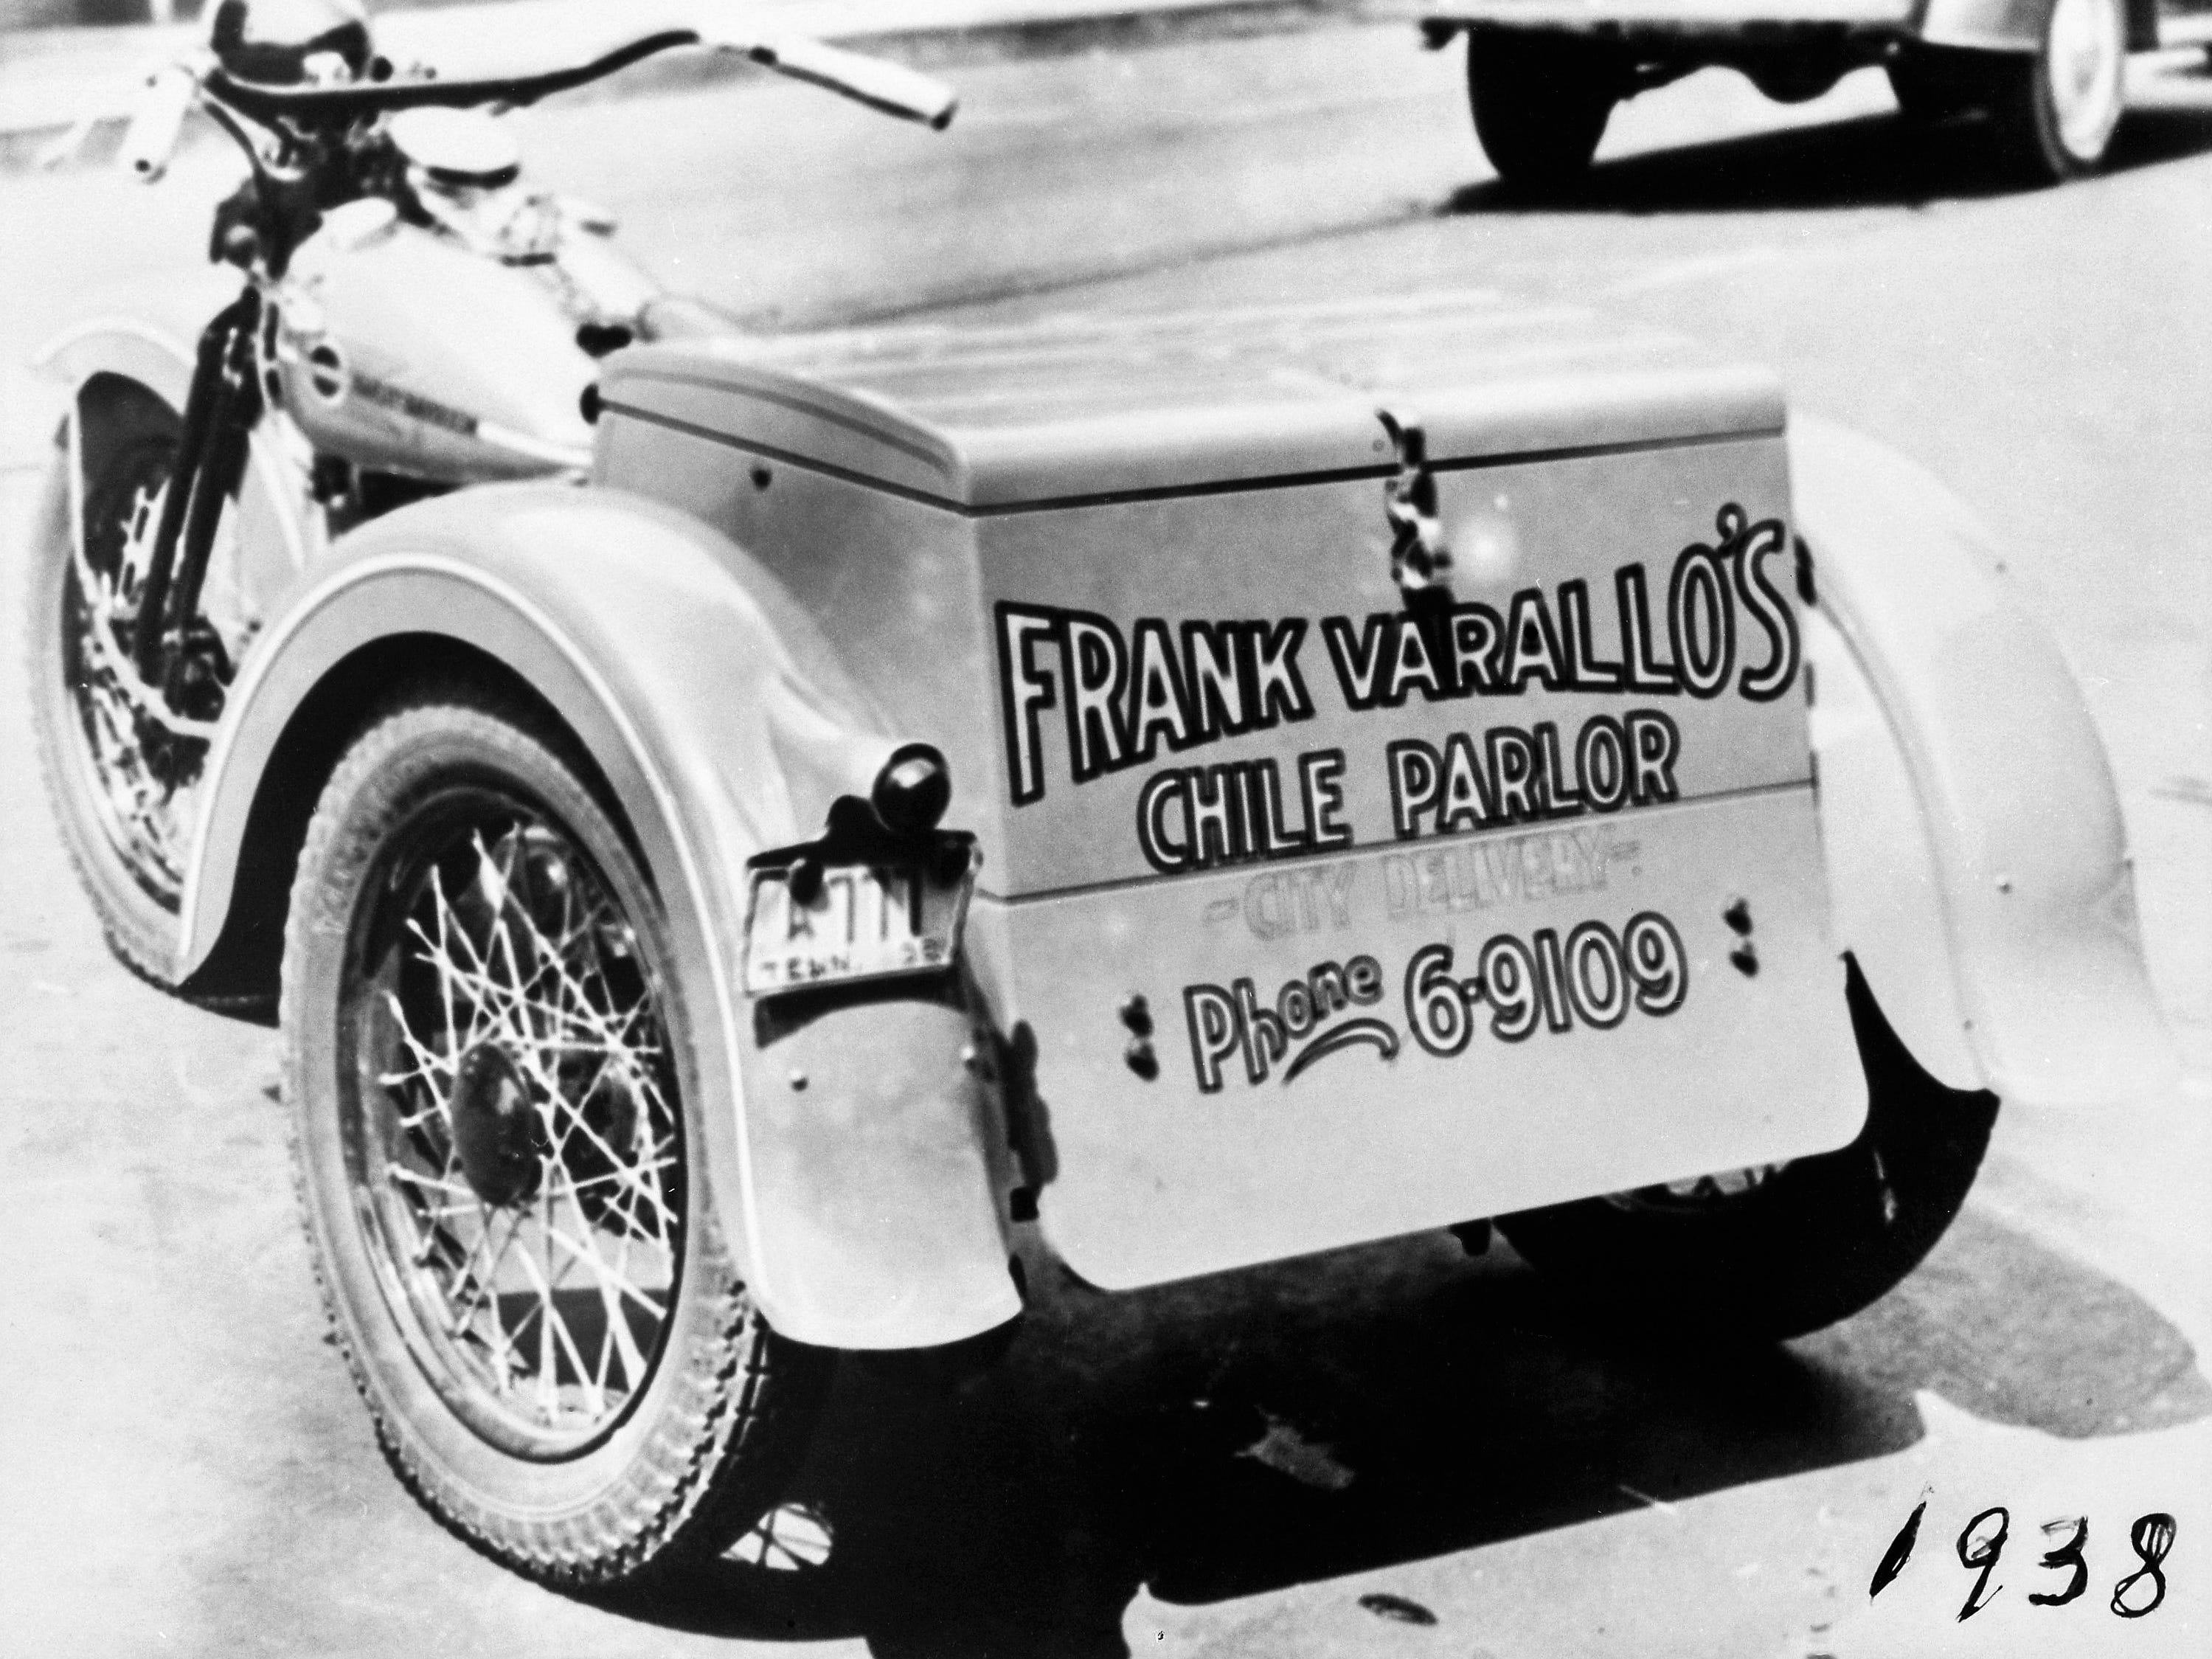 The first three-wheel Harley Davidson motorcycle was used to deliver fresh hot chile around downtown Nashville. In 1938, Varallo's Restaurant was open 24 hours a day. It delivered gallons of chile each day.